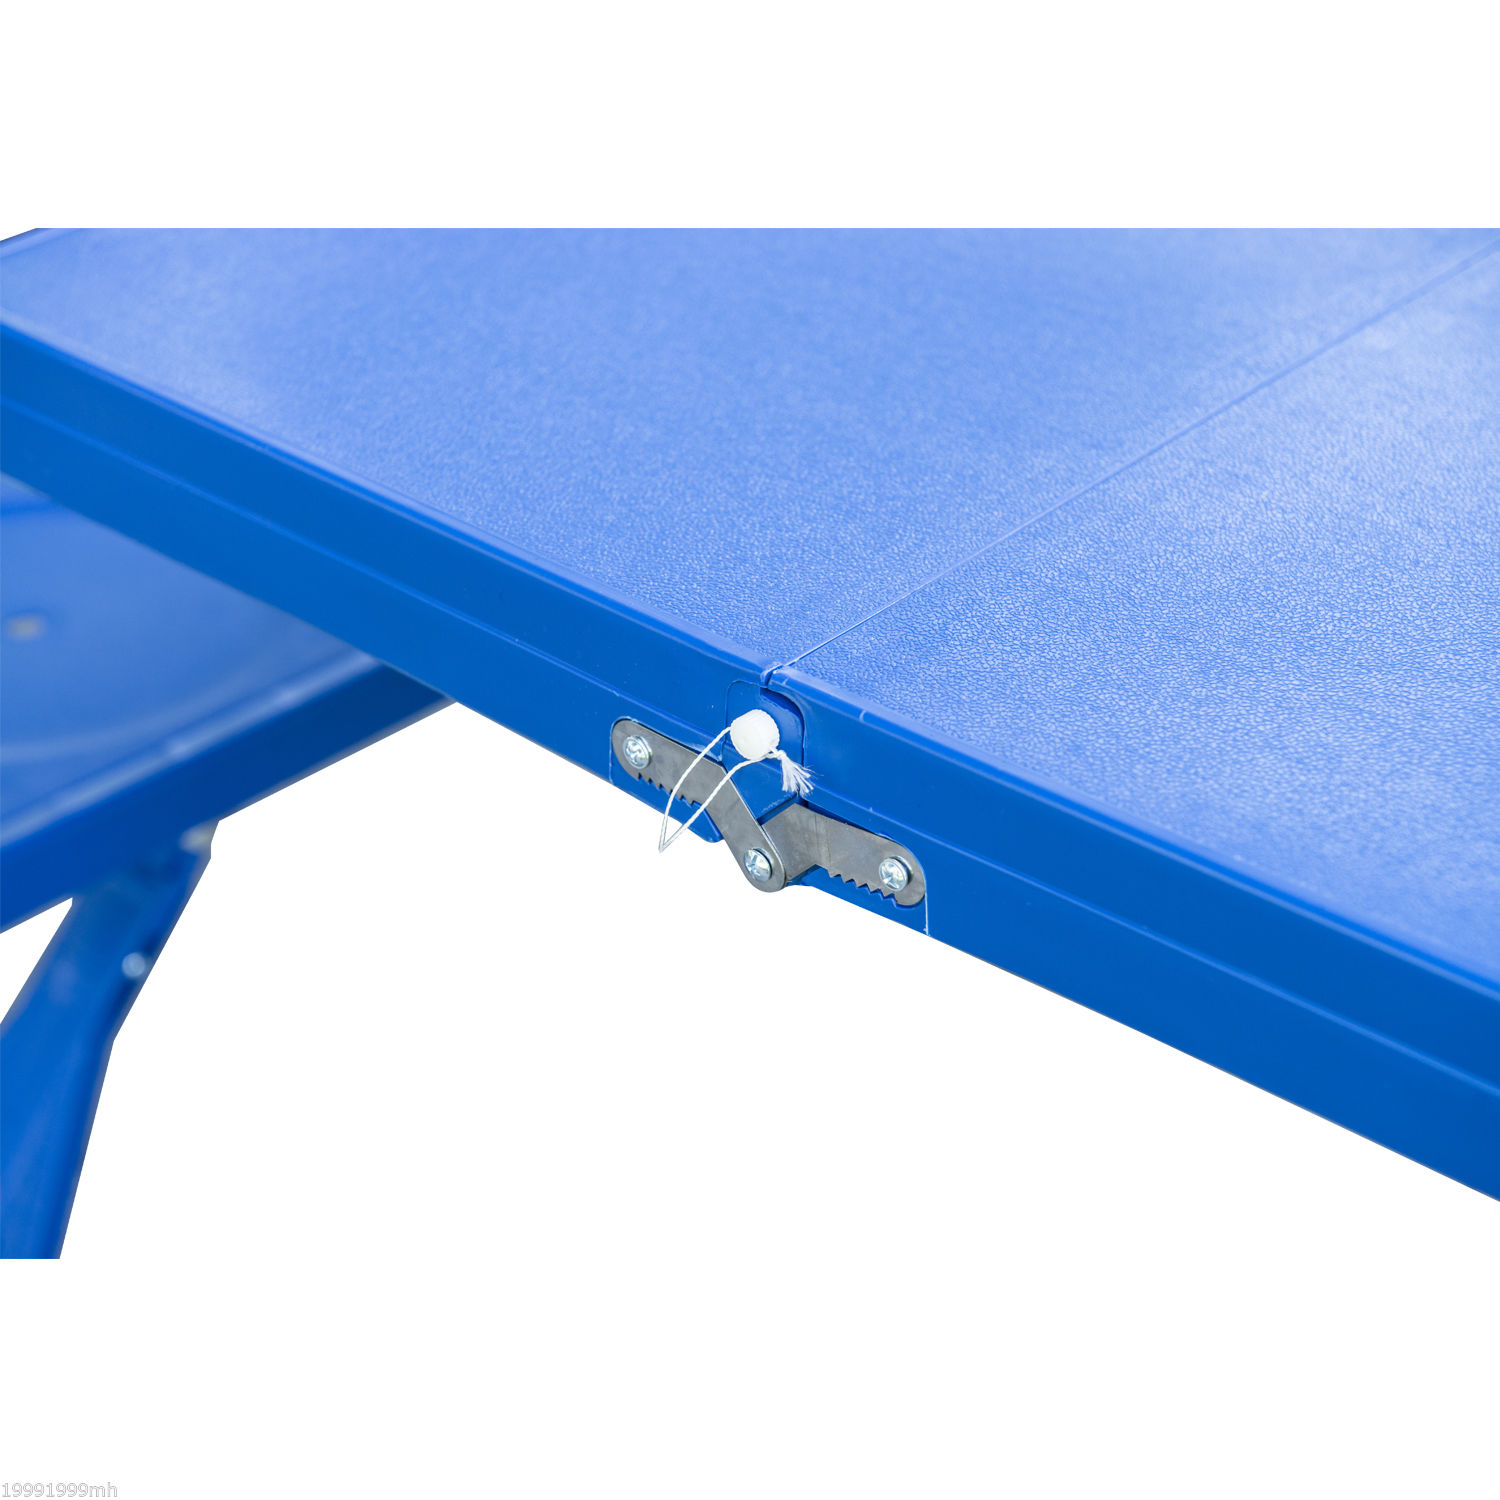 Outsunny-Portable-Junior-Picnic-Table-Folding-Camping-Table-w-4-Seats-Outdoor